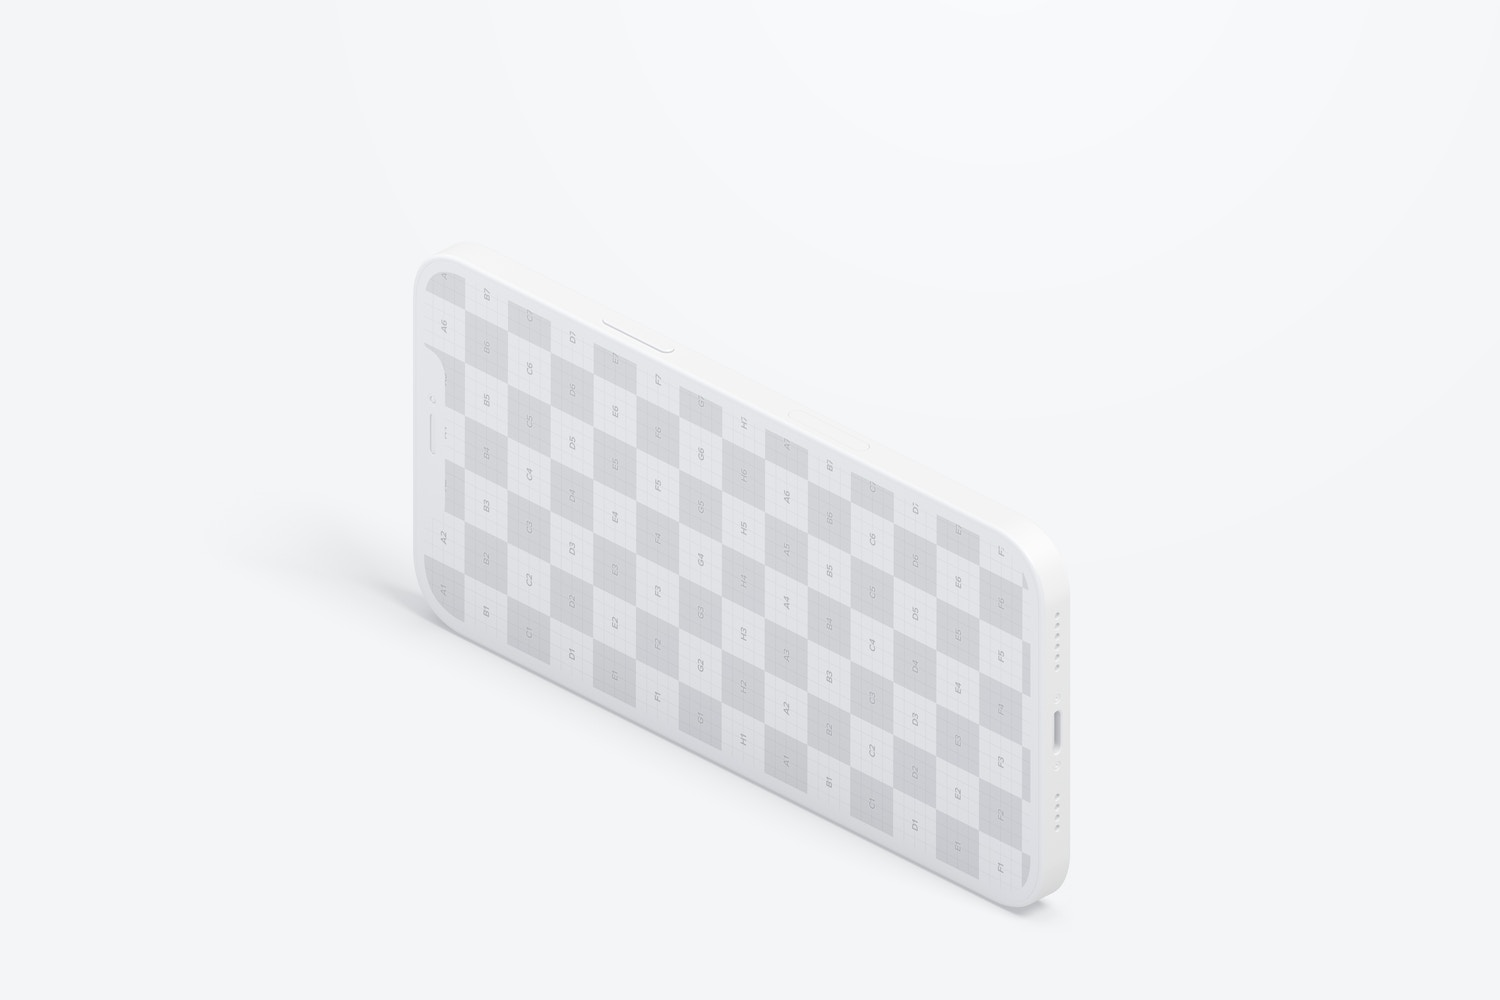 Isometric Clay iPhone 12 Mockup, Landscape Right View